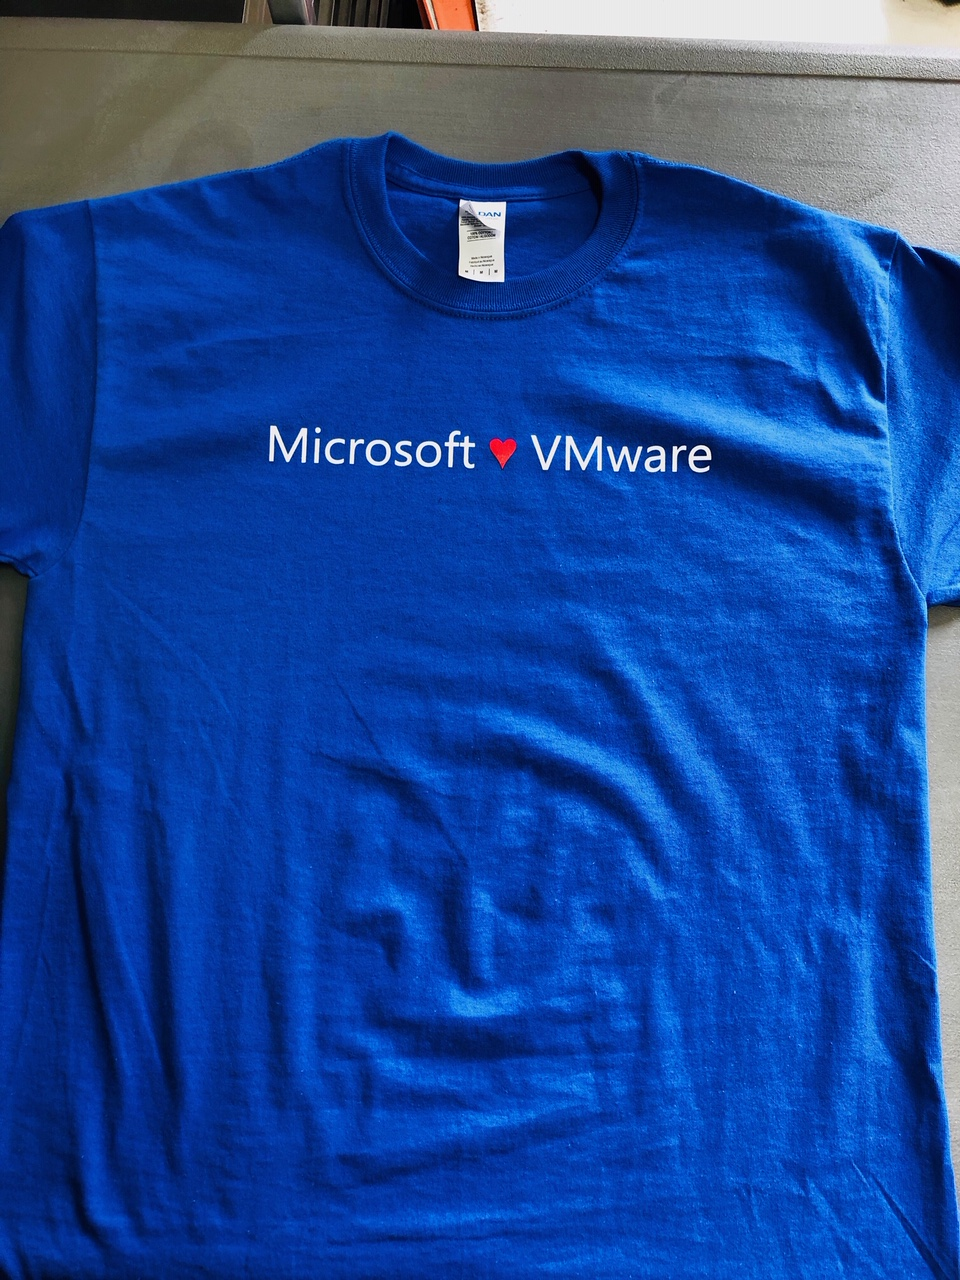 logounltd_laser_etching_embroidery_screen_printing_apparel_uniform_custom_tshirts_kirkland_bellevue_seattle_redmond_woodinville_branded_merchandise_promotional_products_logo_unltd_microsoft (2).JPG